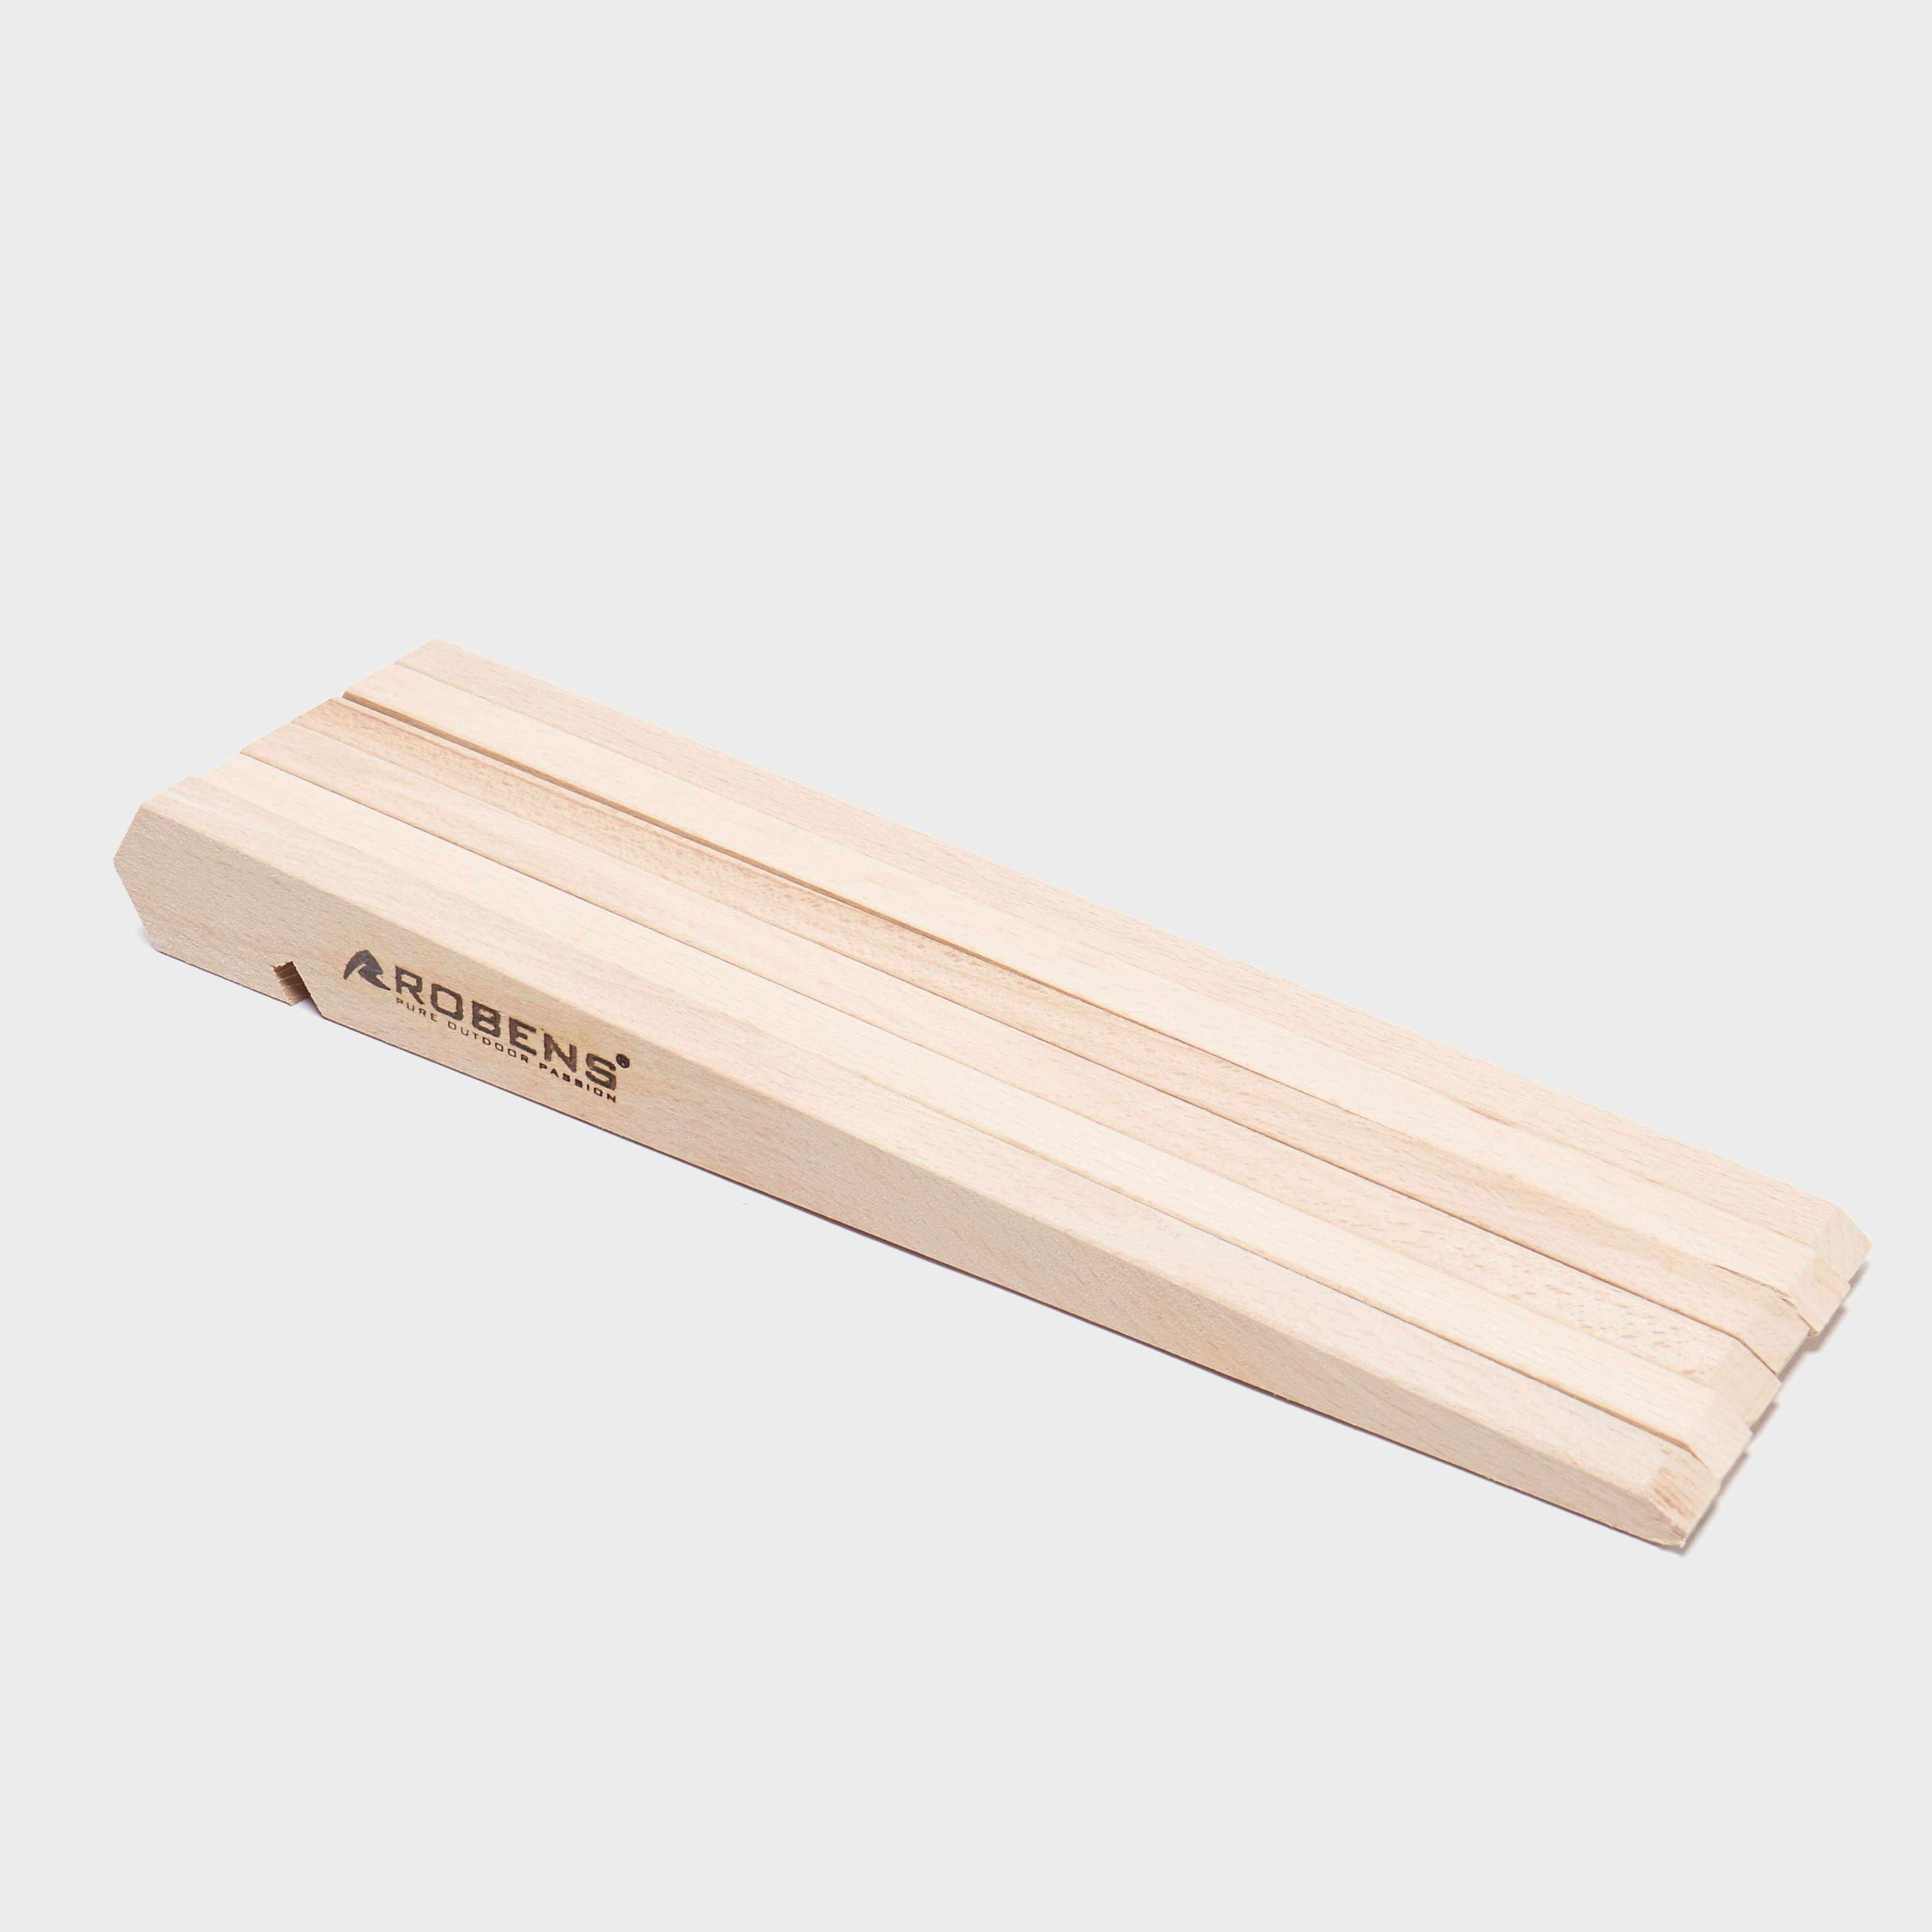 ROBENS Wood Stakes (6 Piece)